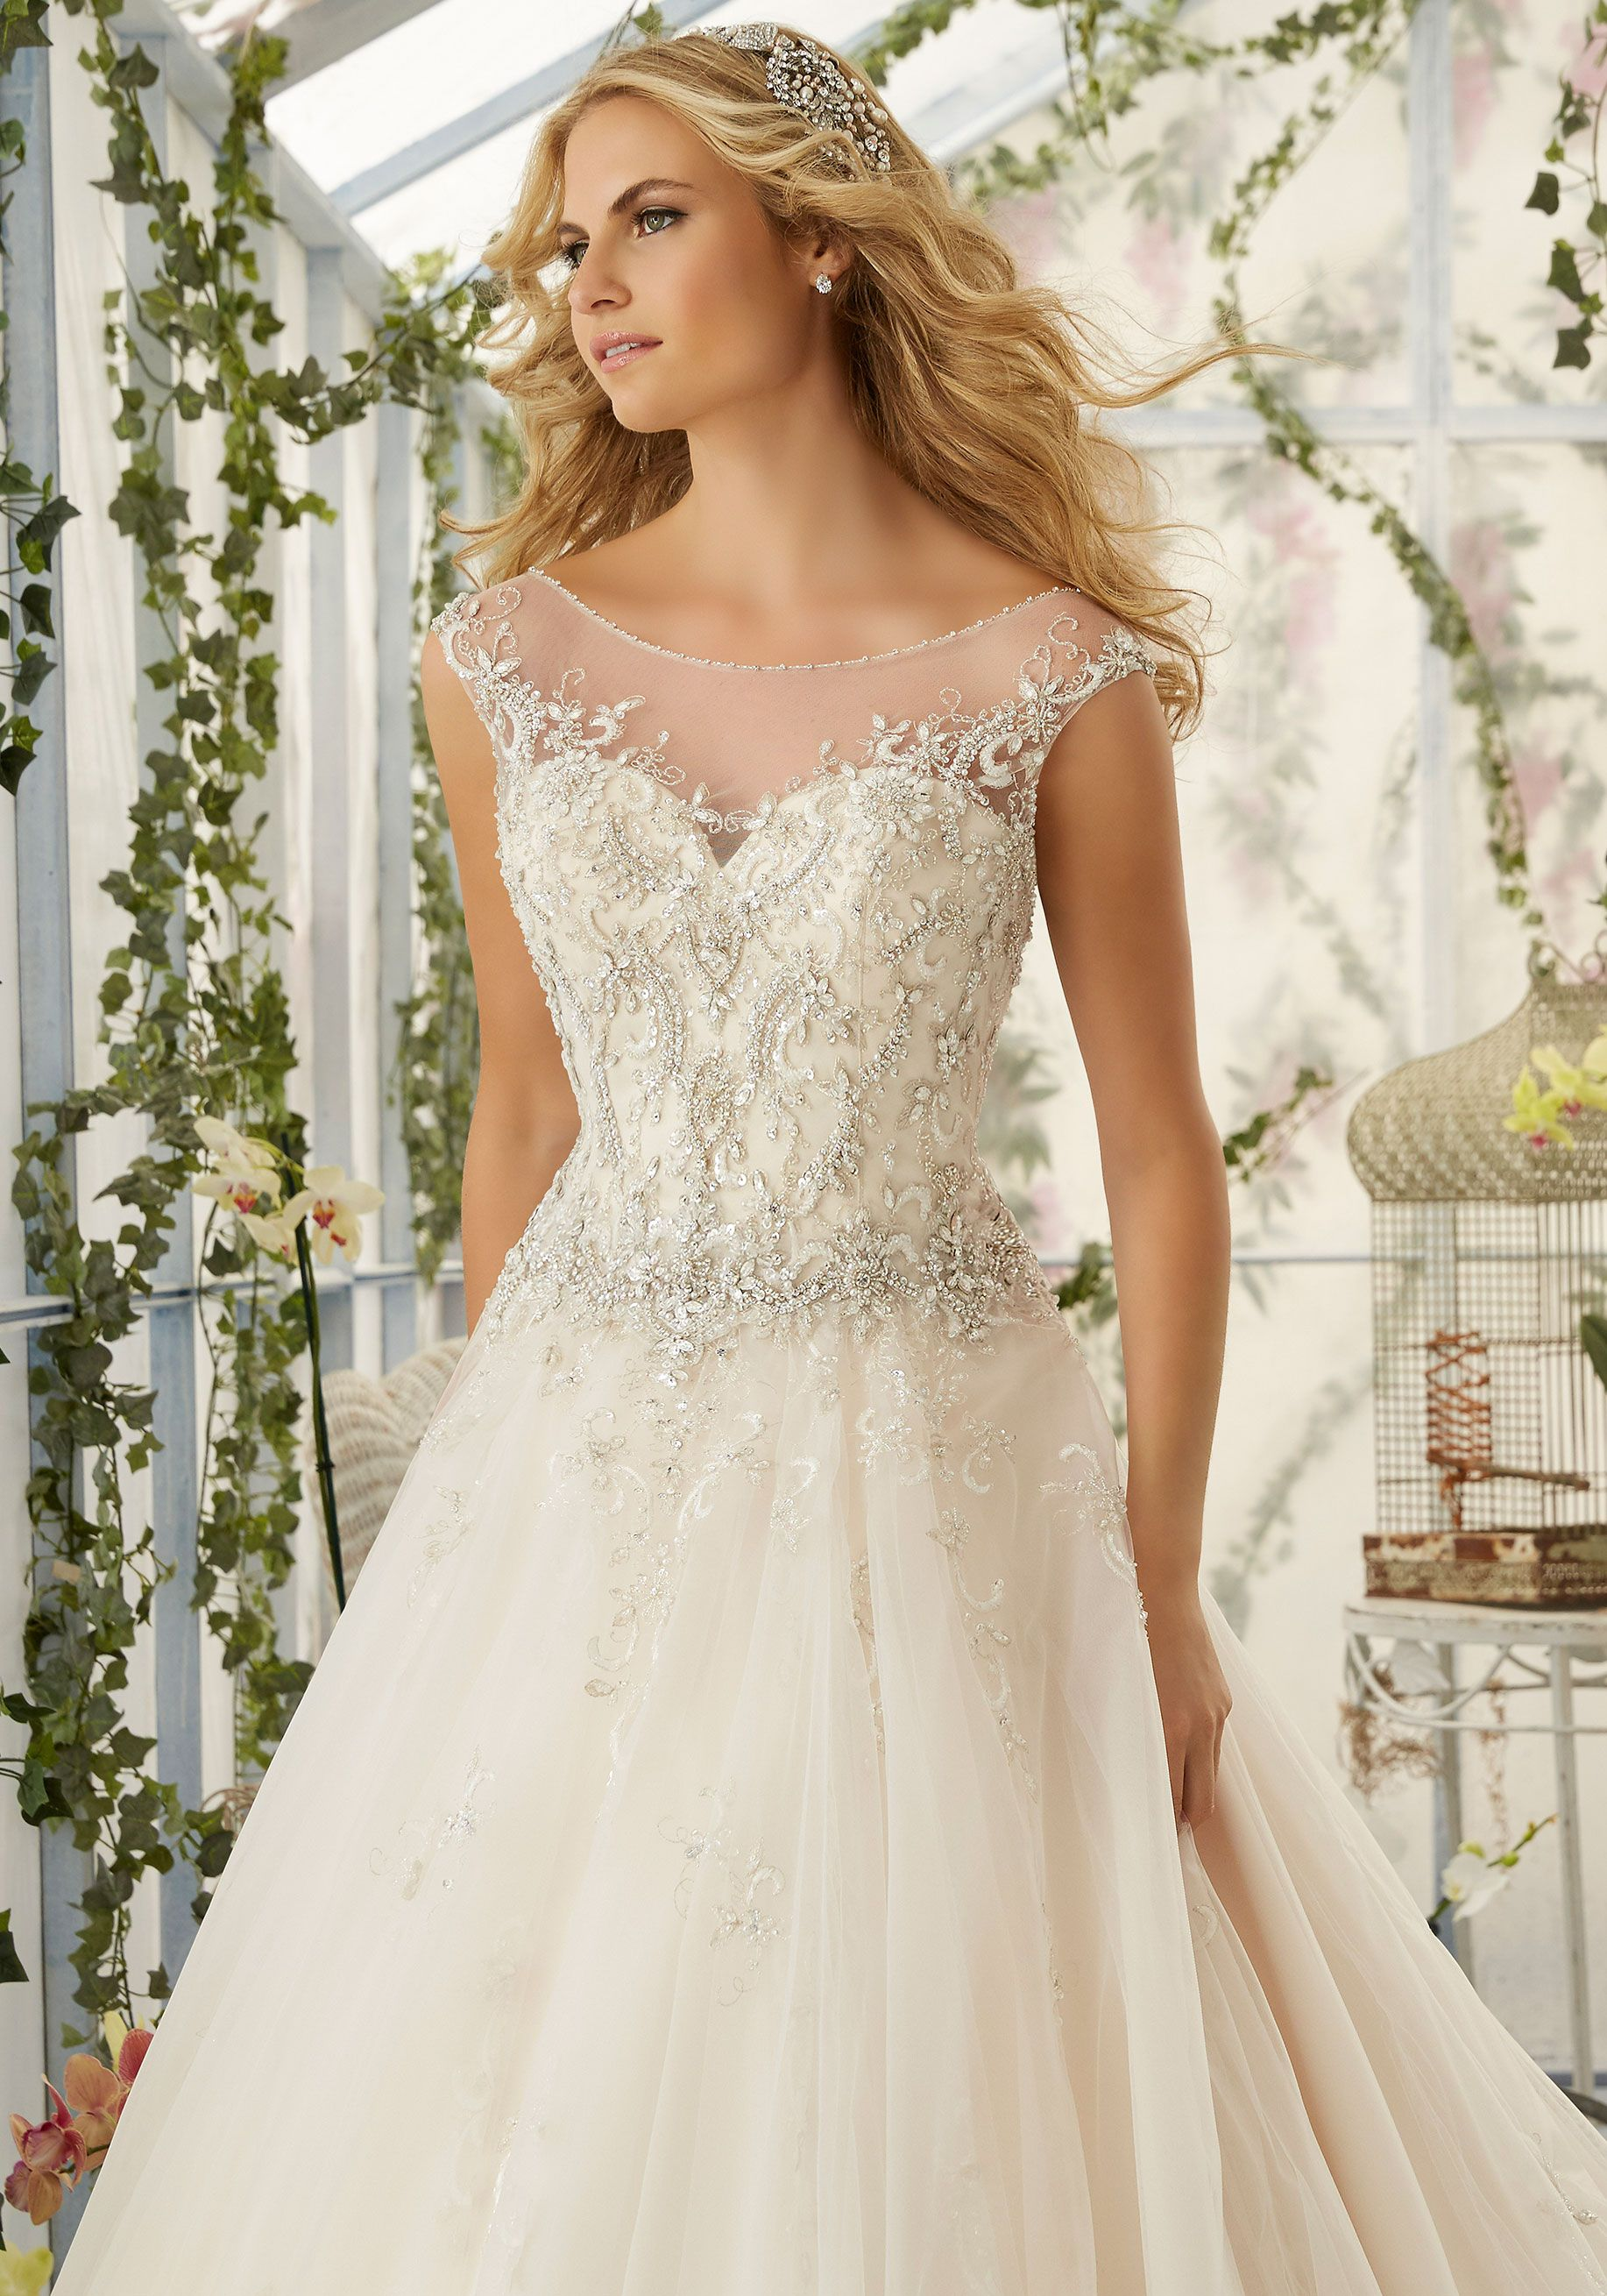 Intricate Crystal Beaded Embroidery On Tulle Morilee Bridal Wedding